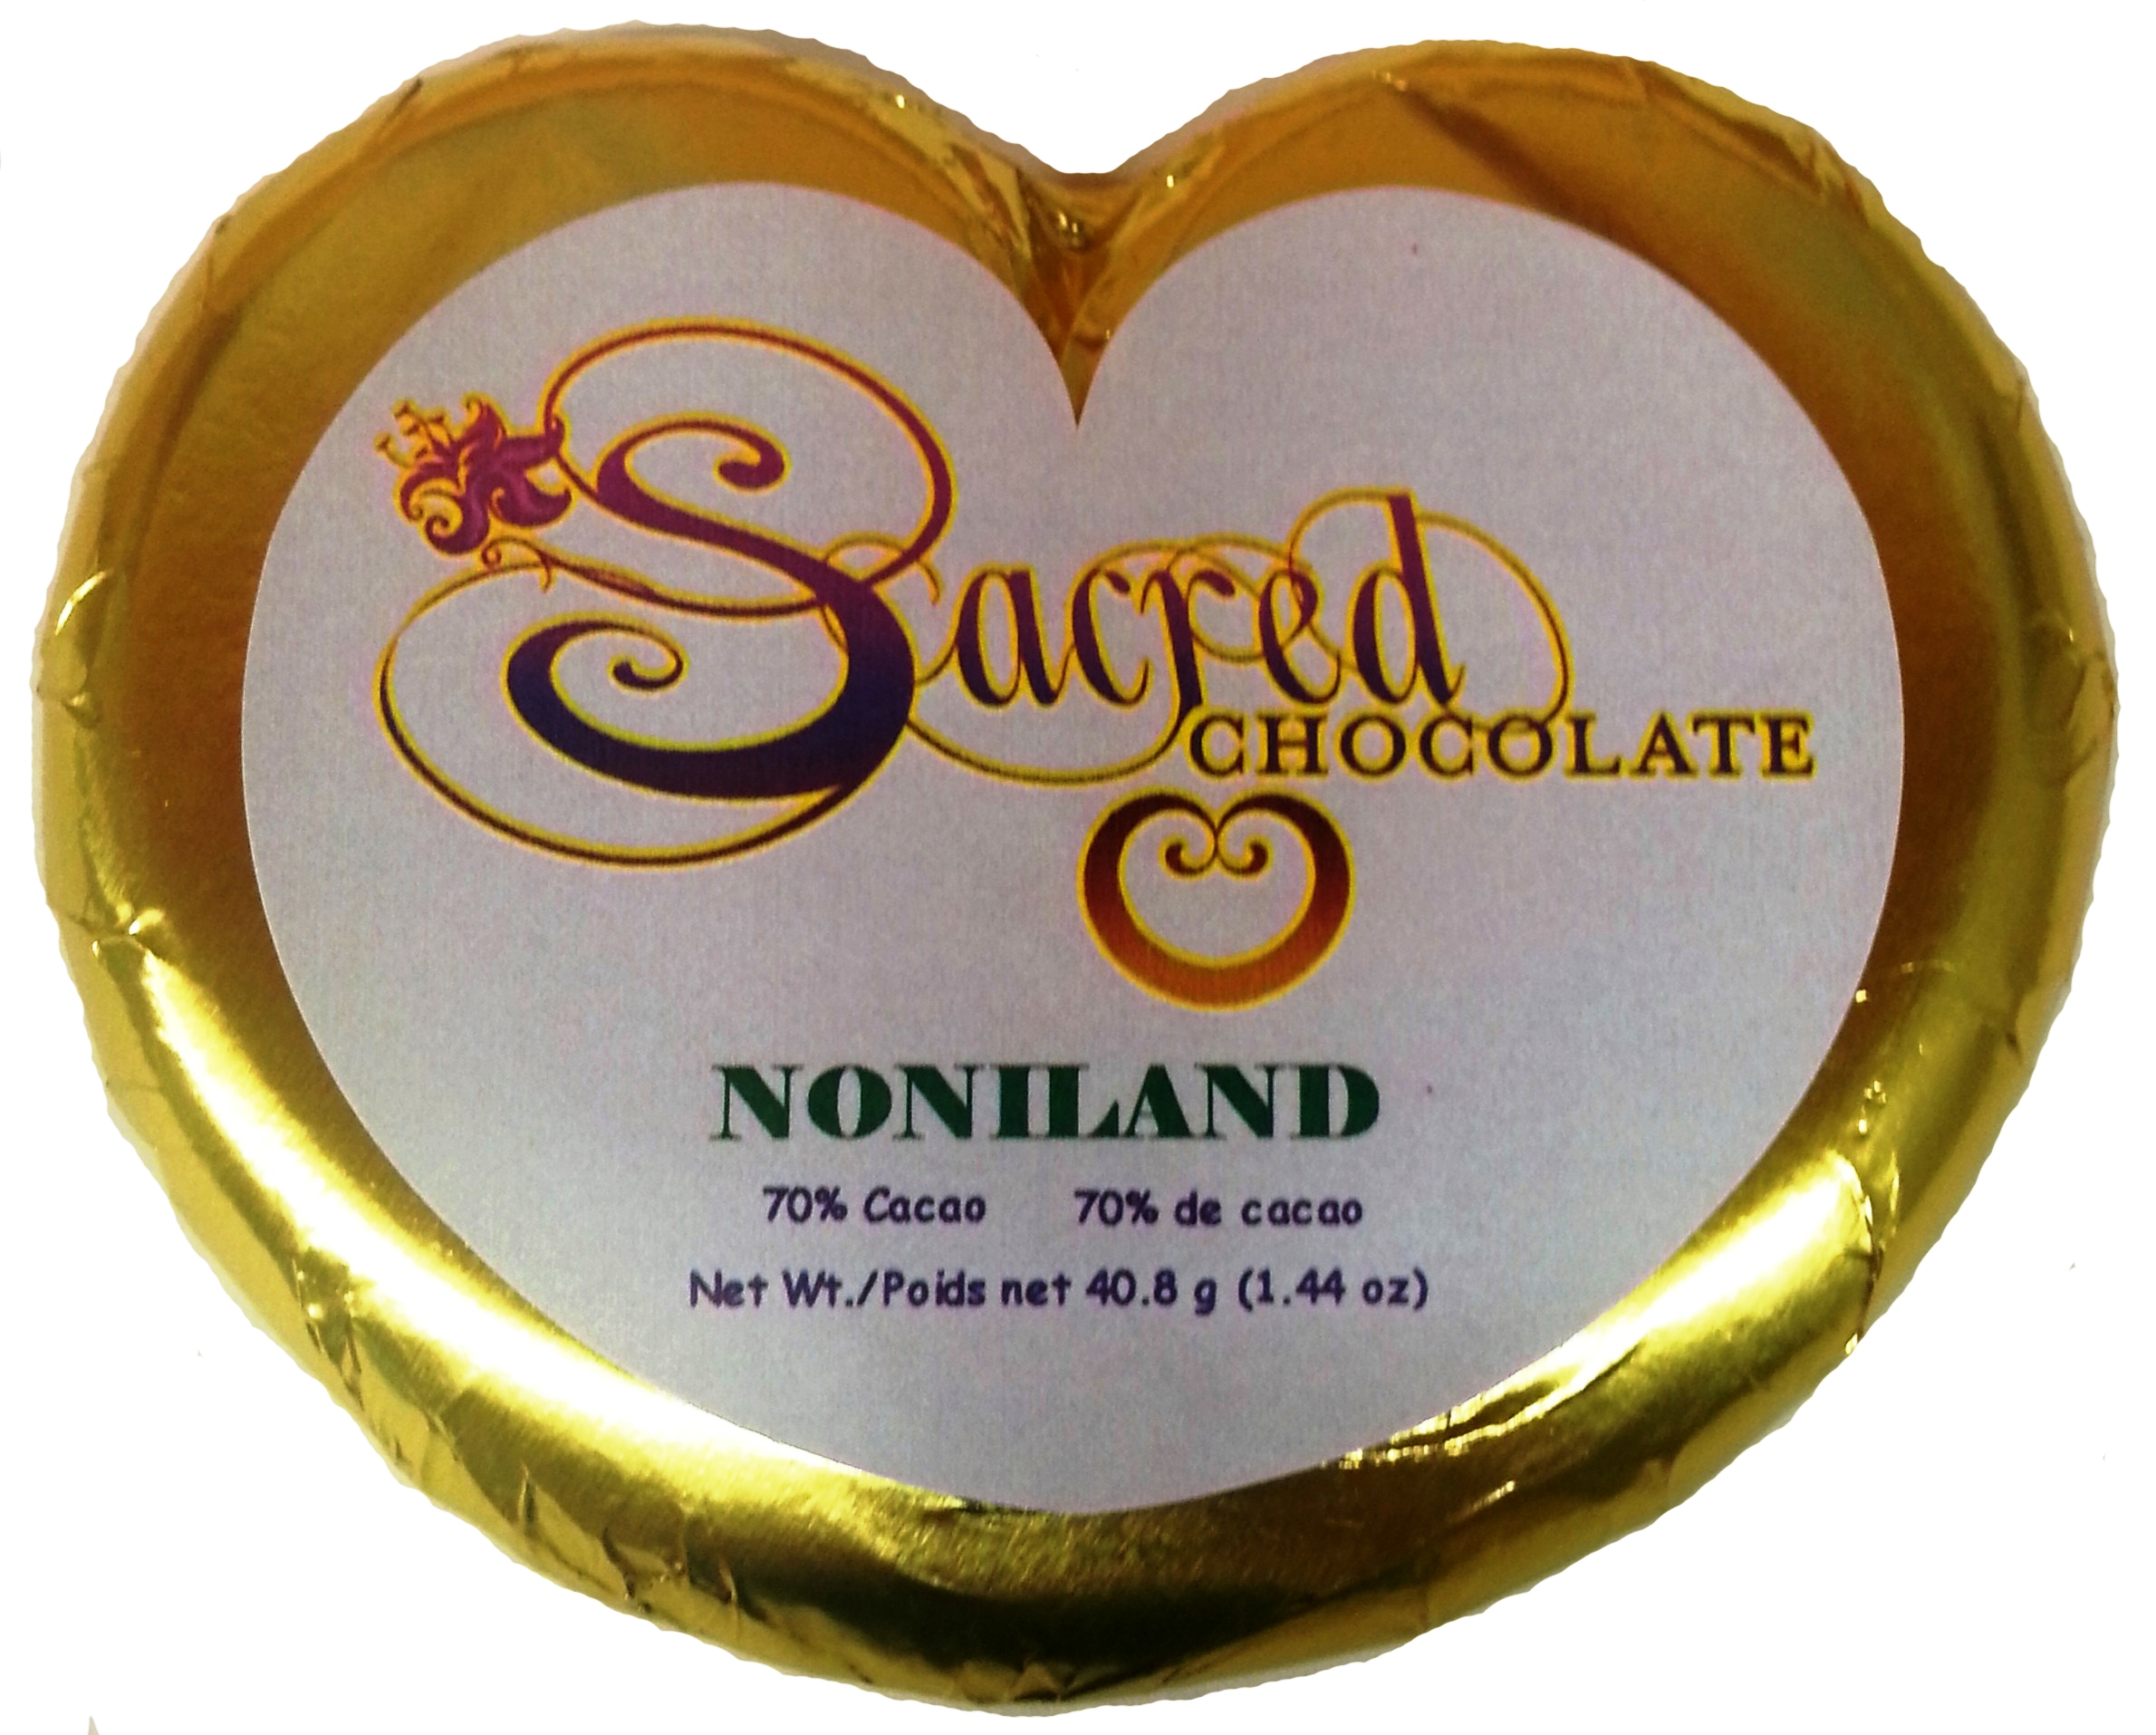 Noniland Front Label